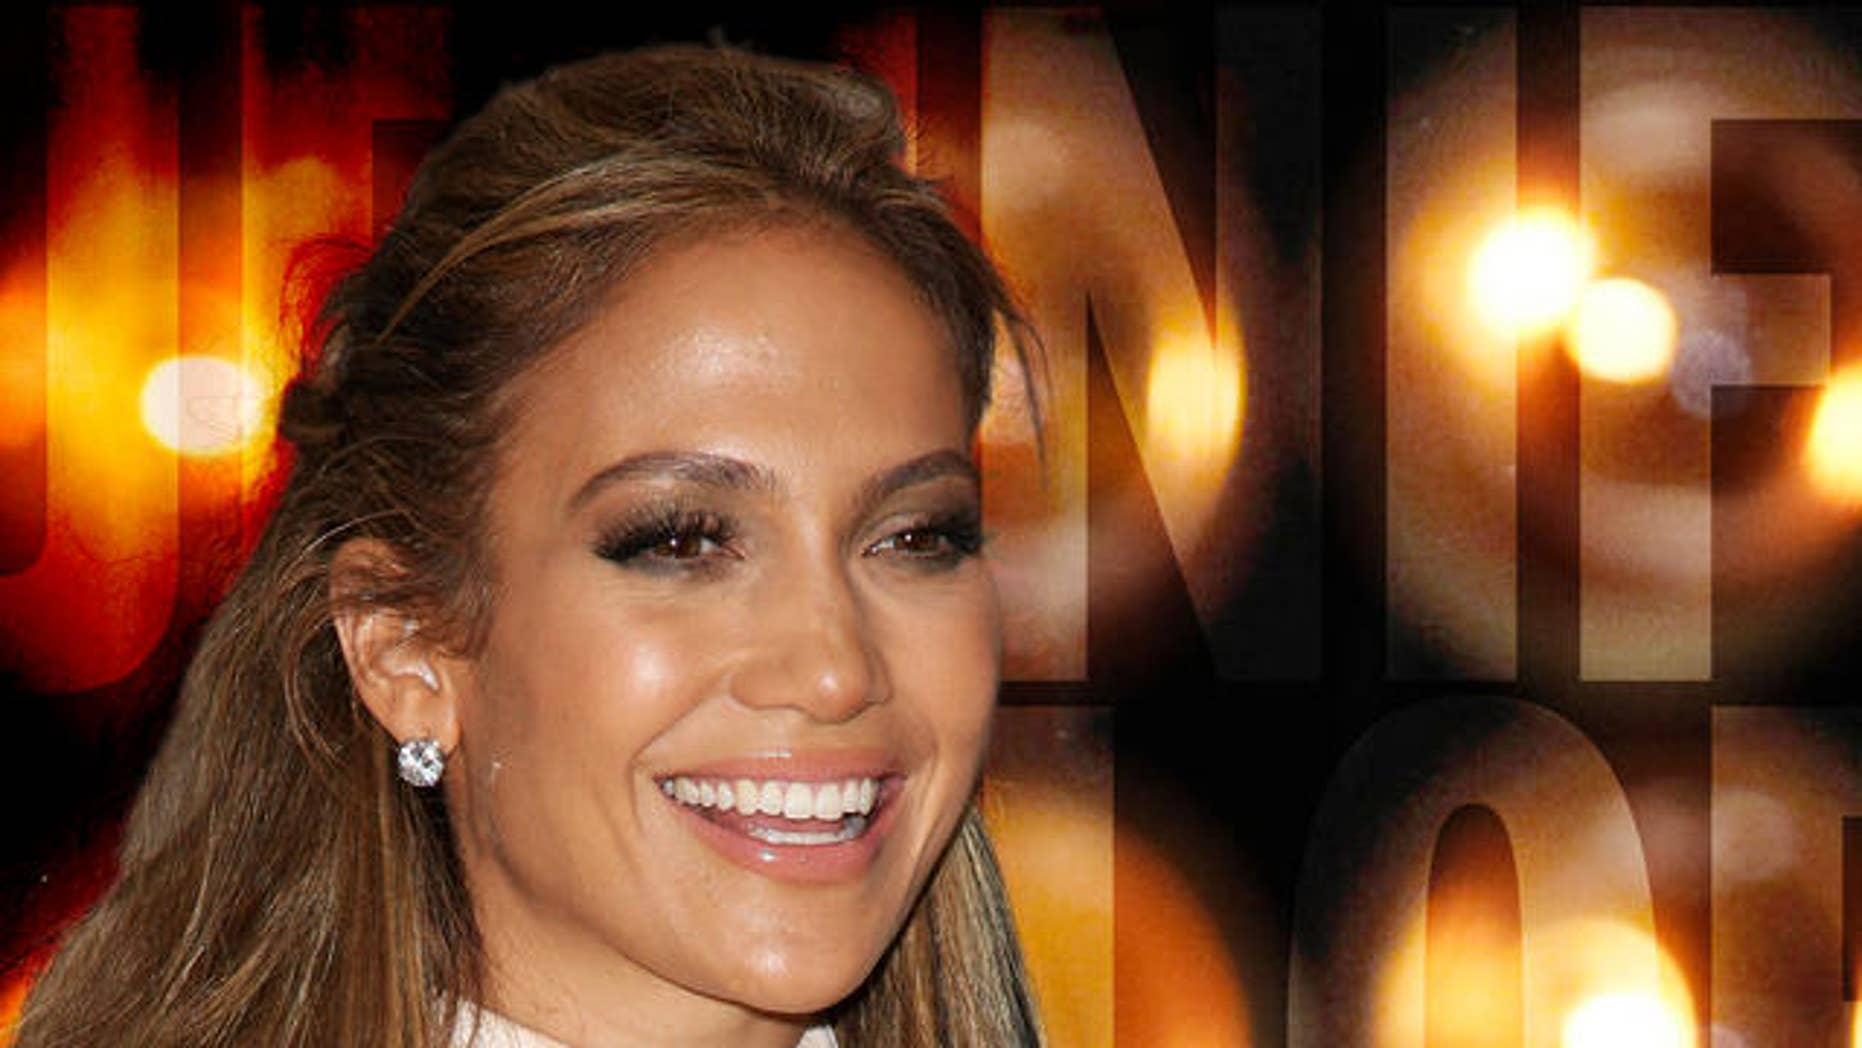 """Actress Jennifer Lopez makes an appearance at Macy's Herald Square as part of Fashion Night Out and also to promote her new fragrance """"Love and Glamour"""", in New York, on Friday, Sept. 10, 2010. (AP Photo/Peter Kramer)"""